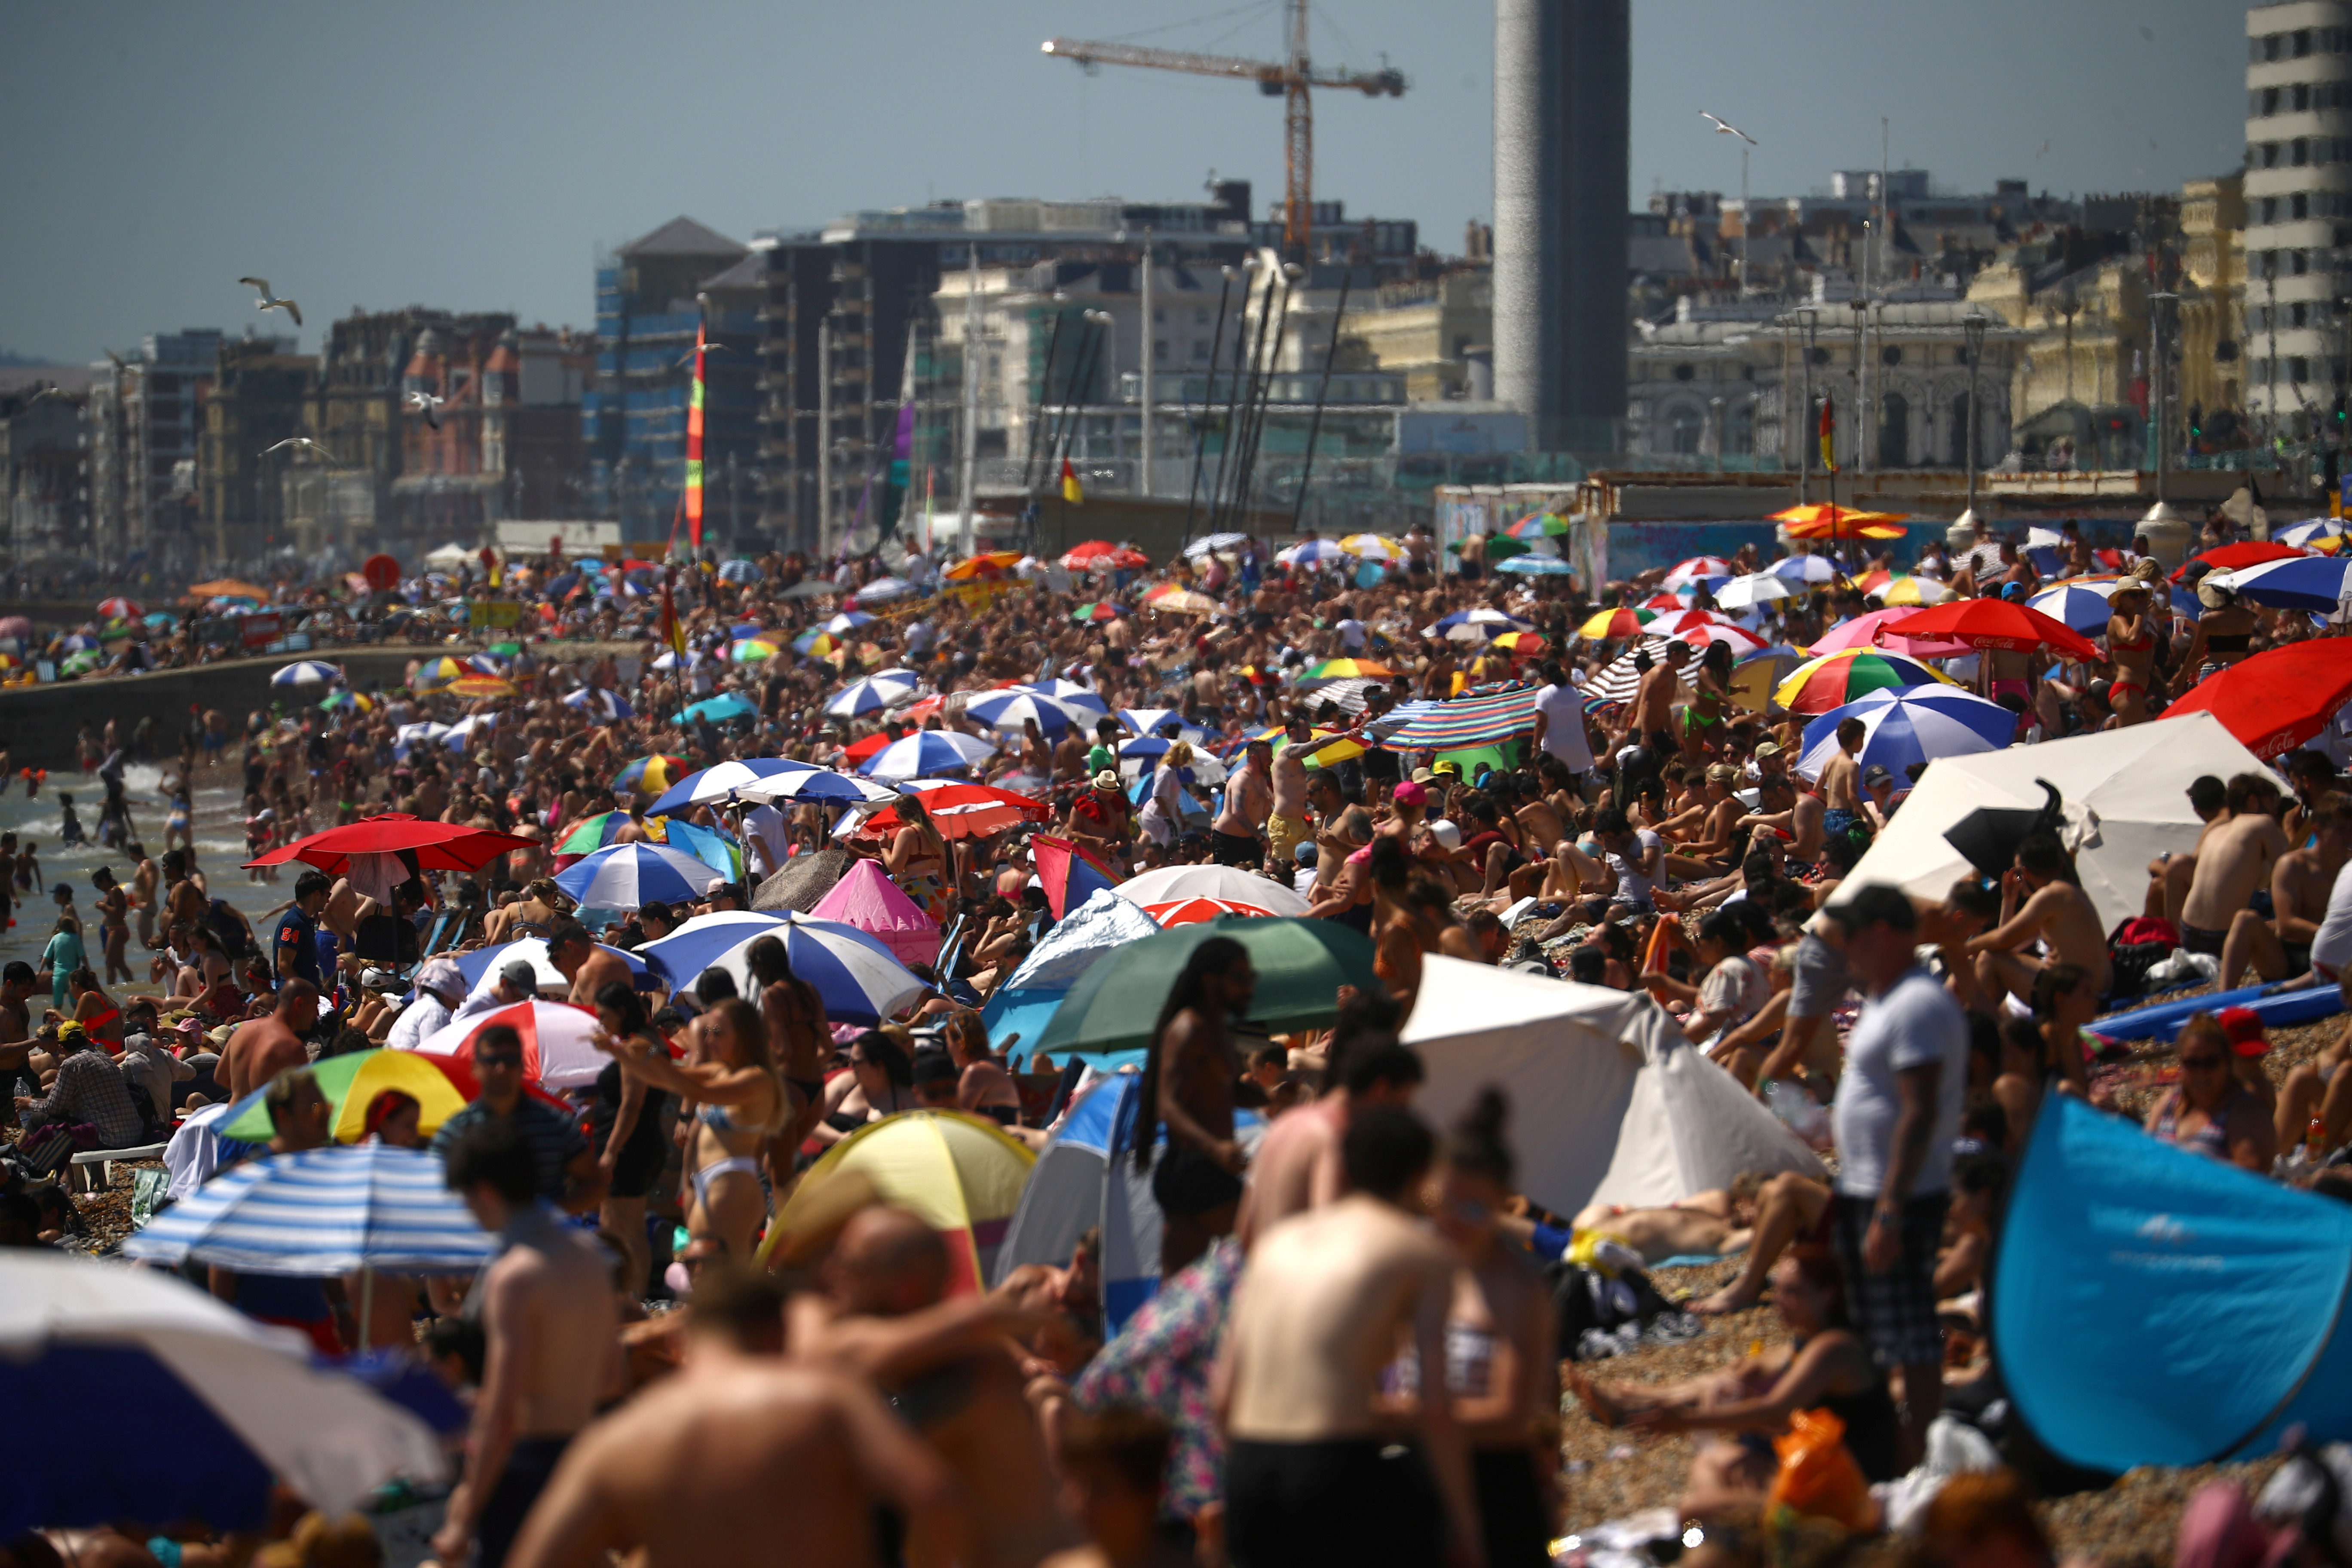 People enjoy the hot weather at the beach in Brighton, Britain, June 25, 2020. REUTERS/Hannah McKay - RC2DGH97DP5P